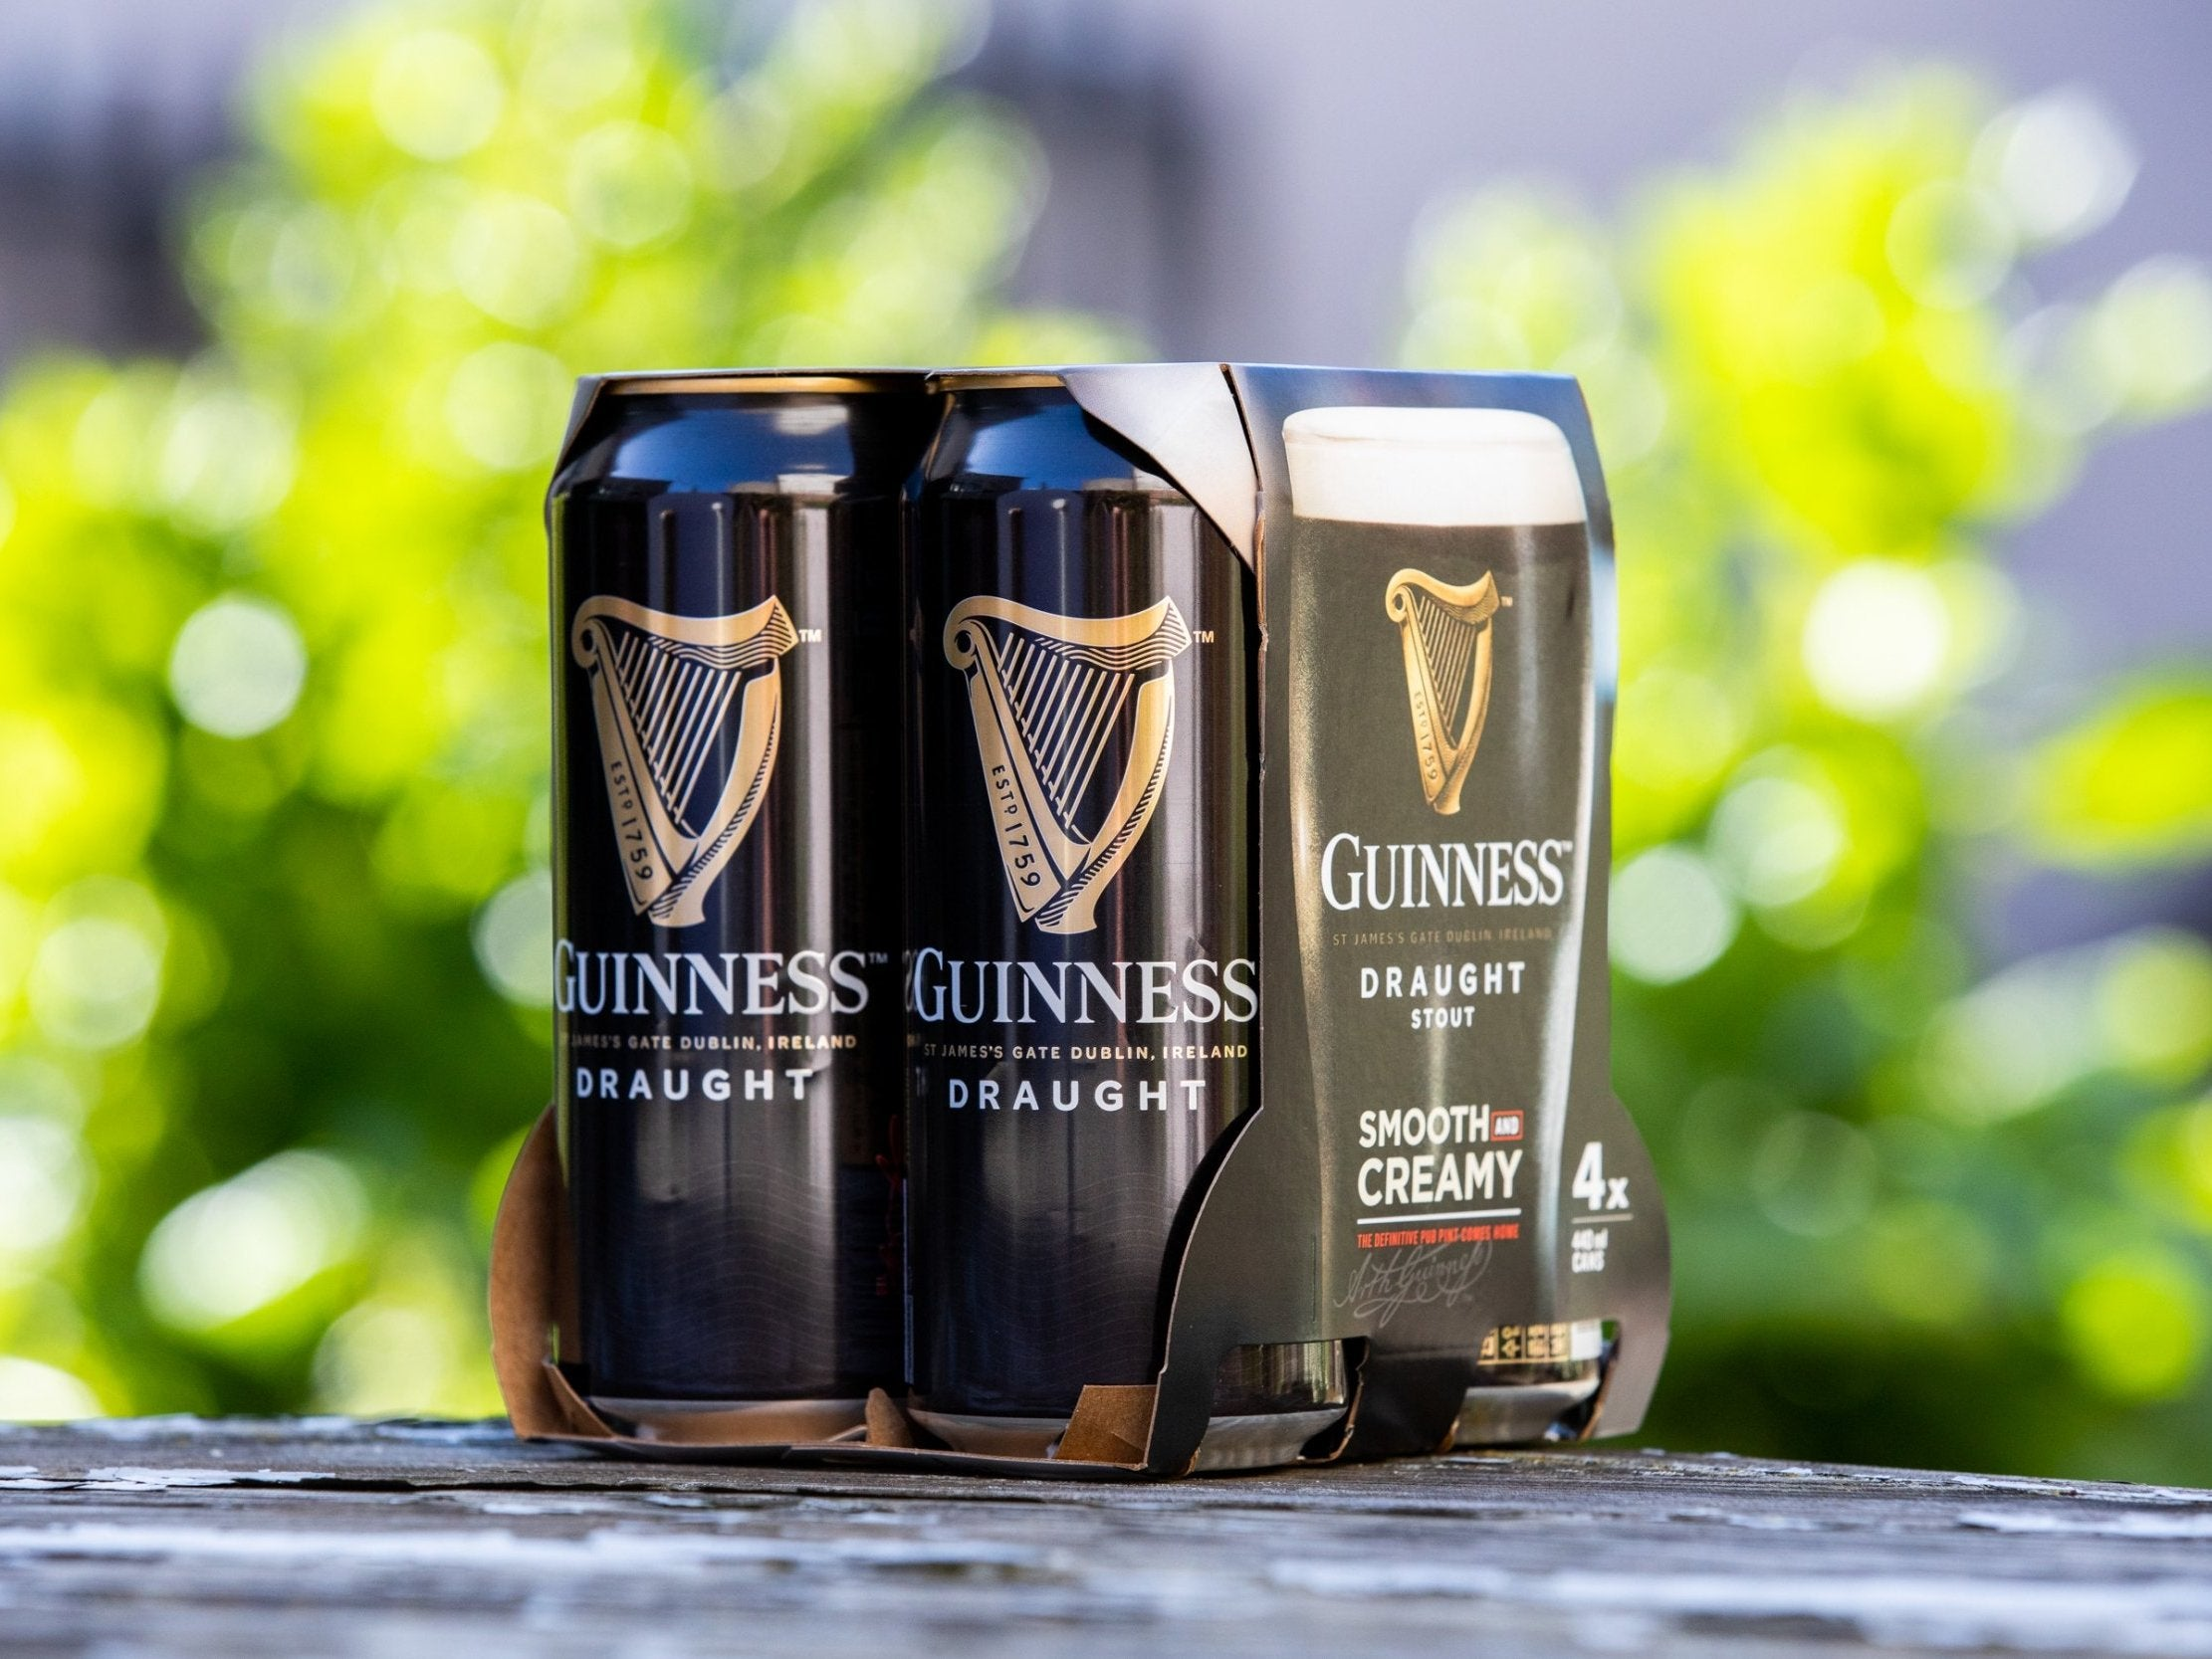 Drinks giant Diageo to remove plastic packaging from Guinness and other brands